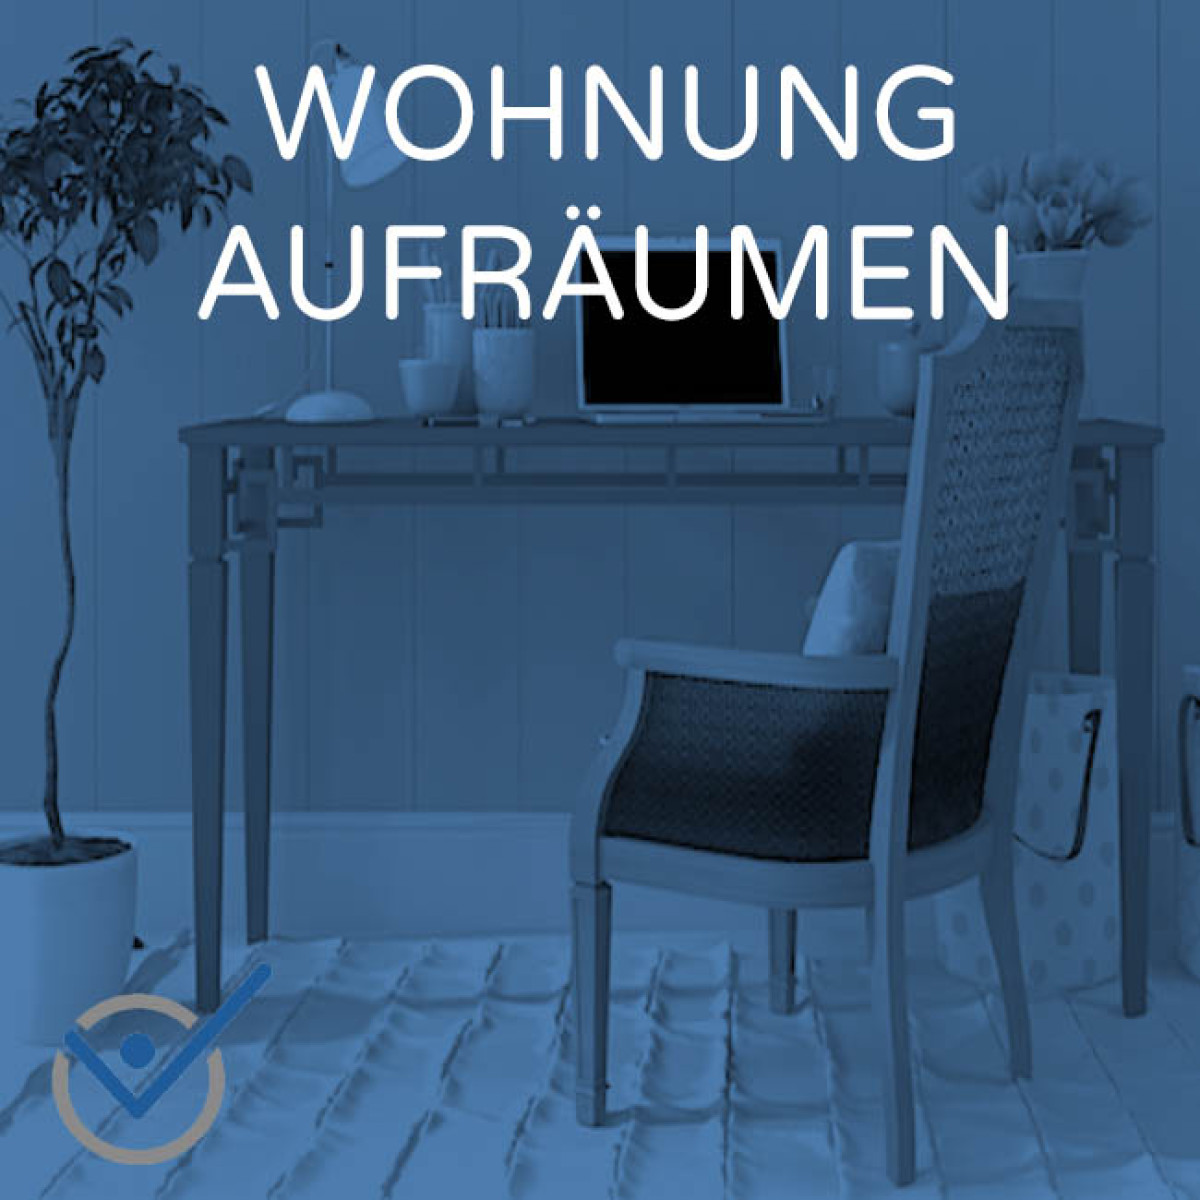 wohnung aufr umen wohnung entr mpeln archives minimalismus aufr umen ordnung. Black Bedroom Furniture Sets. Home Design Ideas